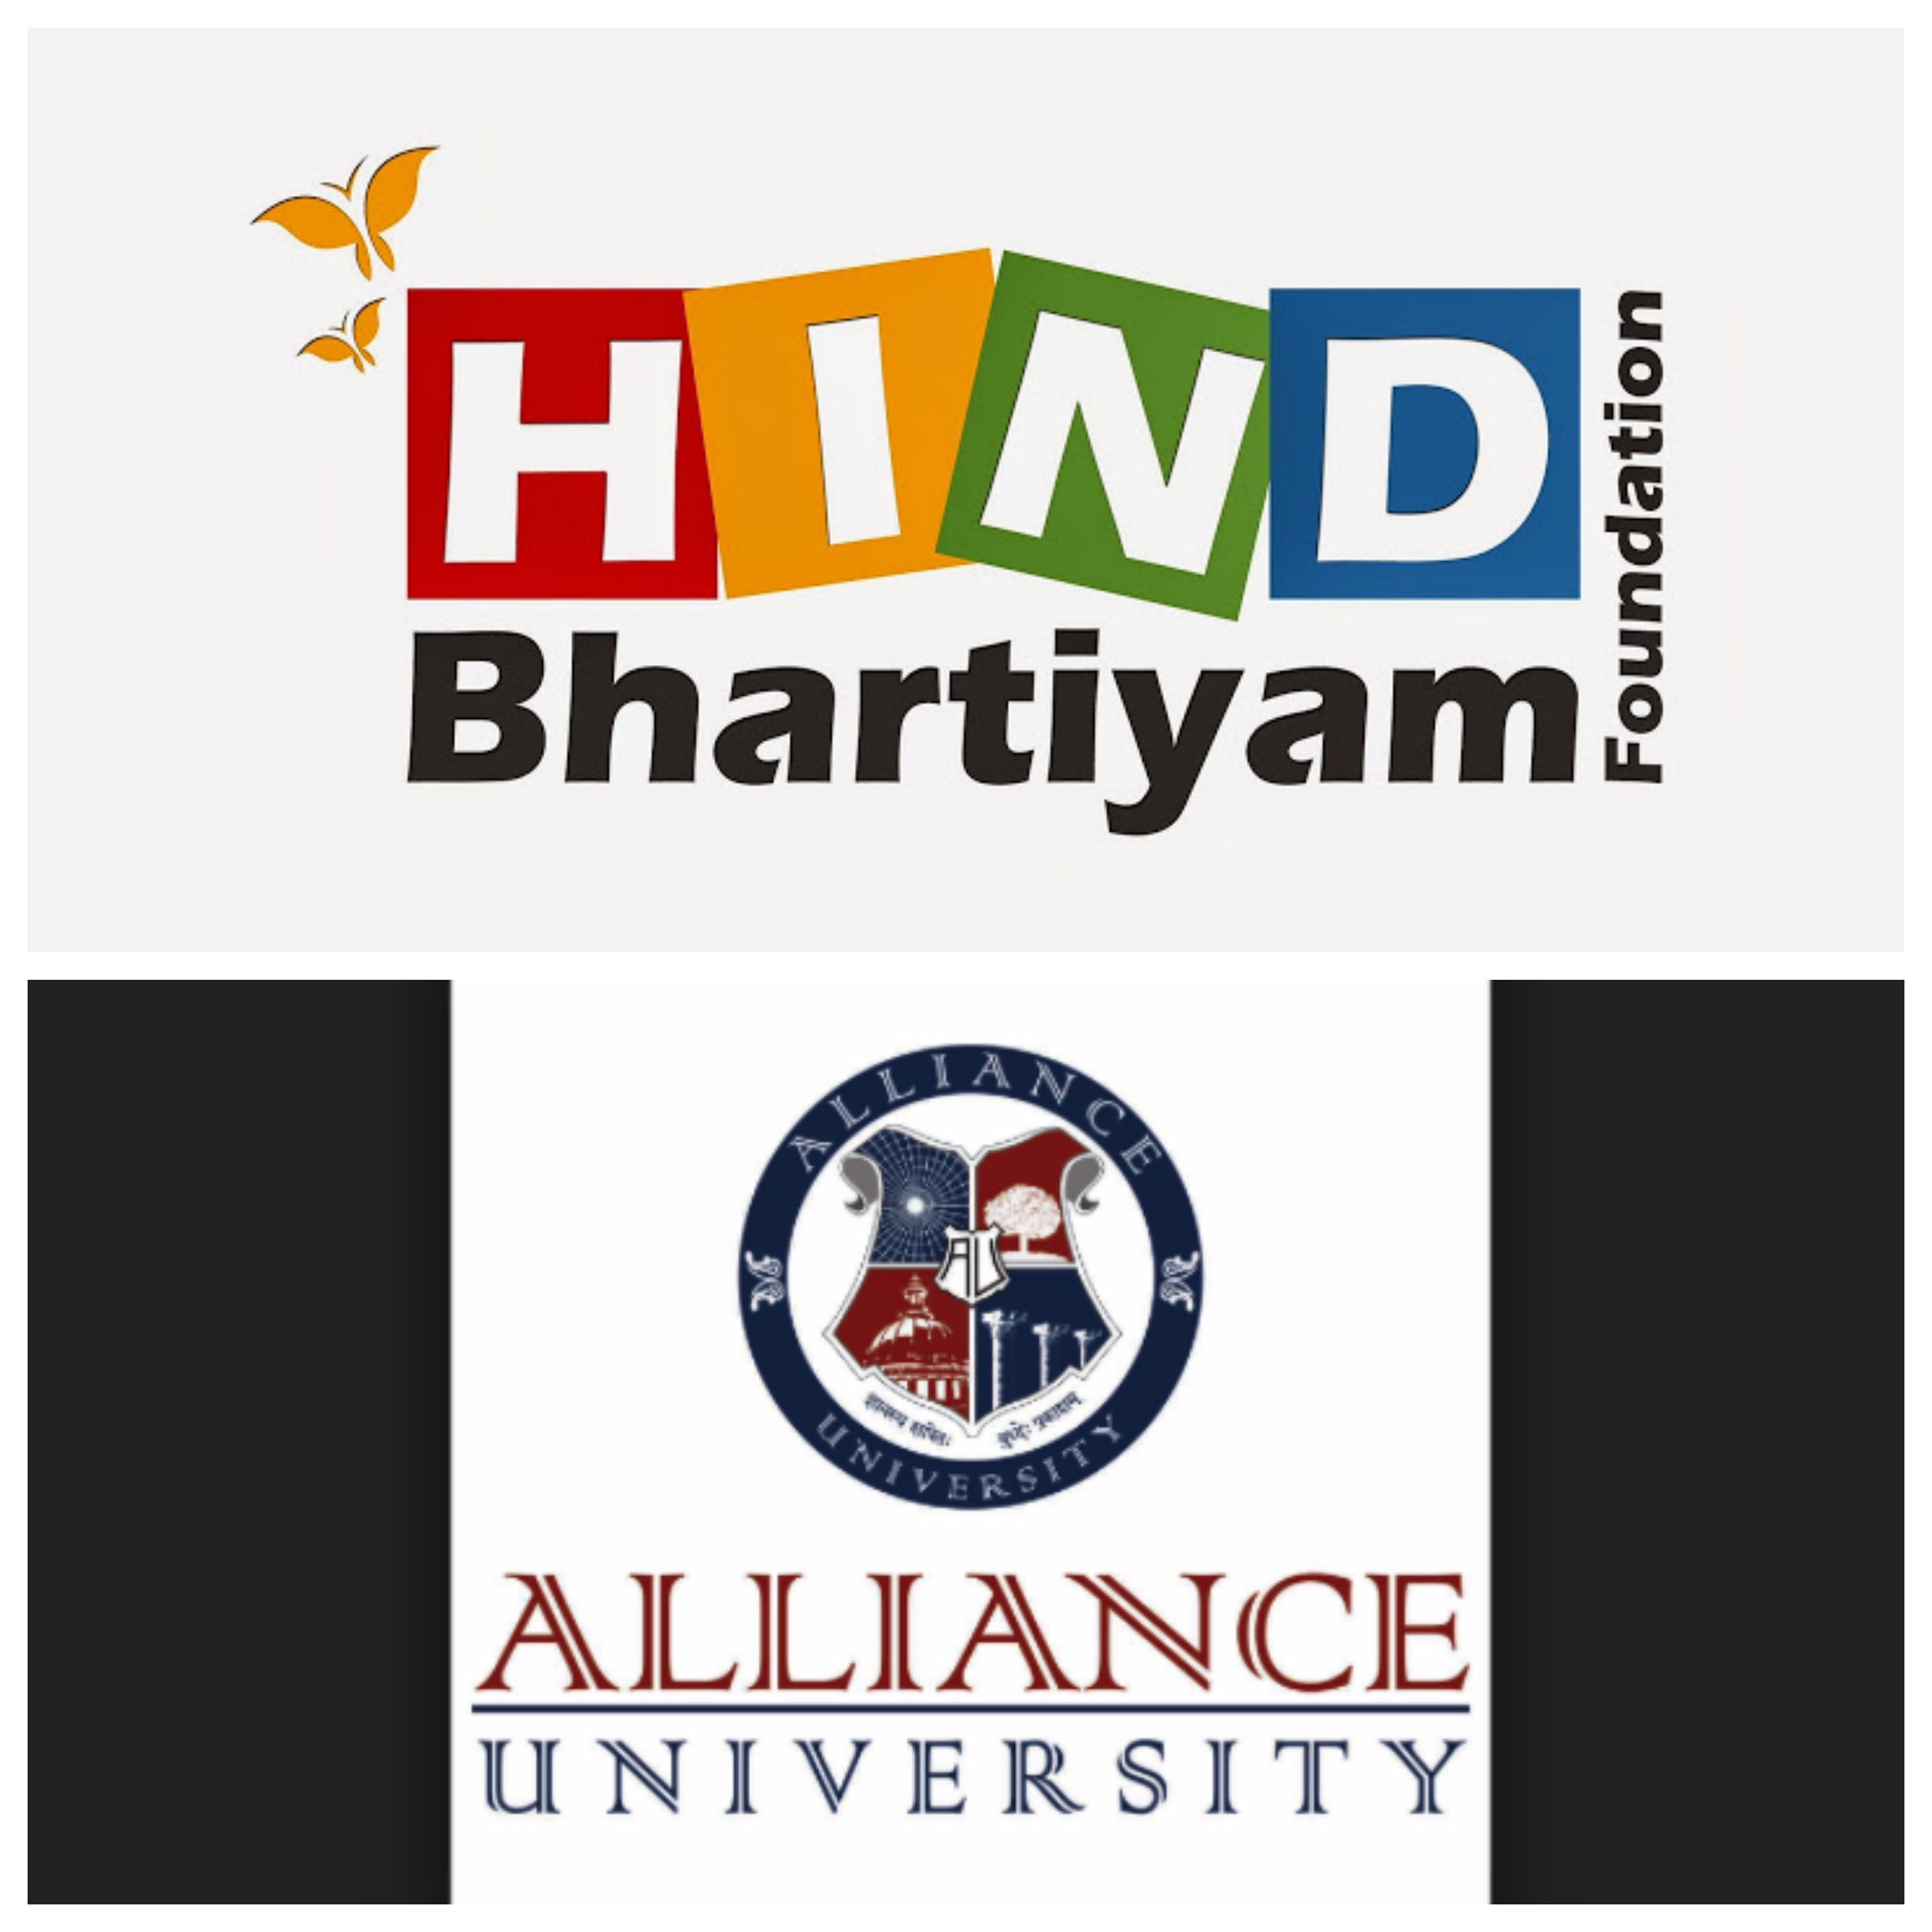 Alliance University and Hind Bhartiyam Foundation's Debate Competition [May 13th, Bangalore]: Register by April 26